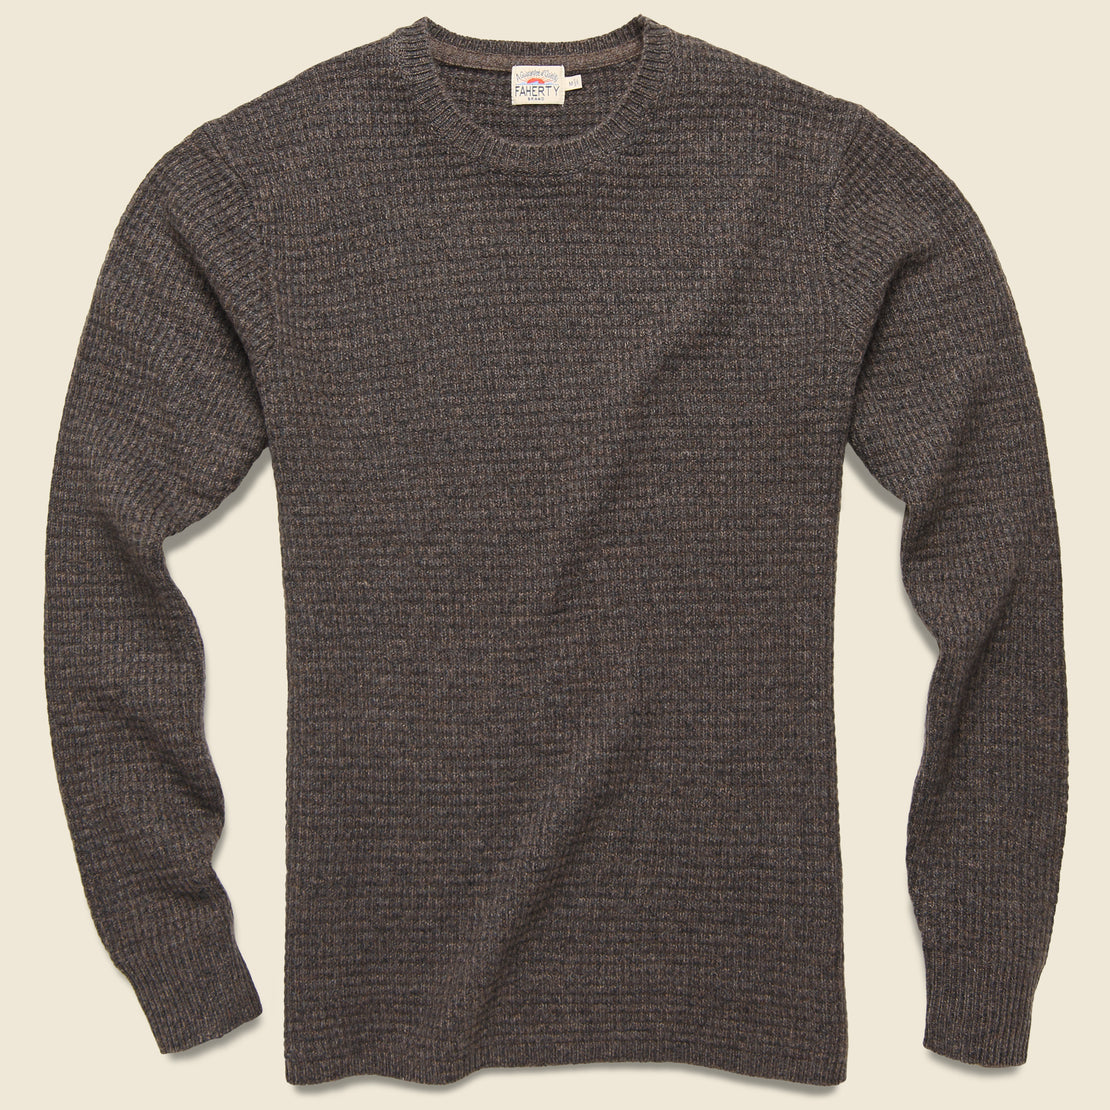 Faherty Cashmere Crewneck - Walnut